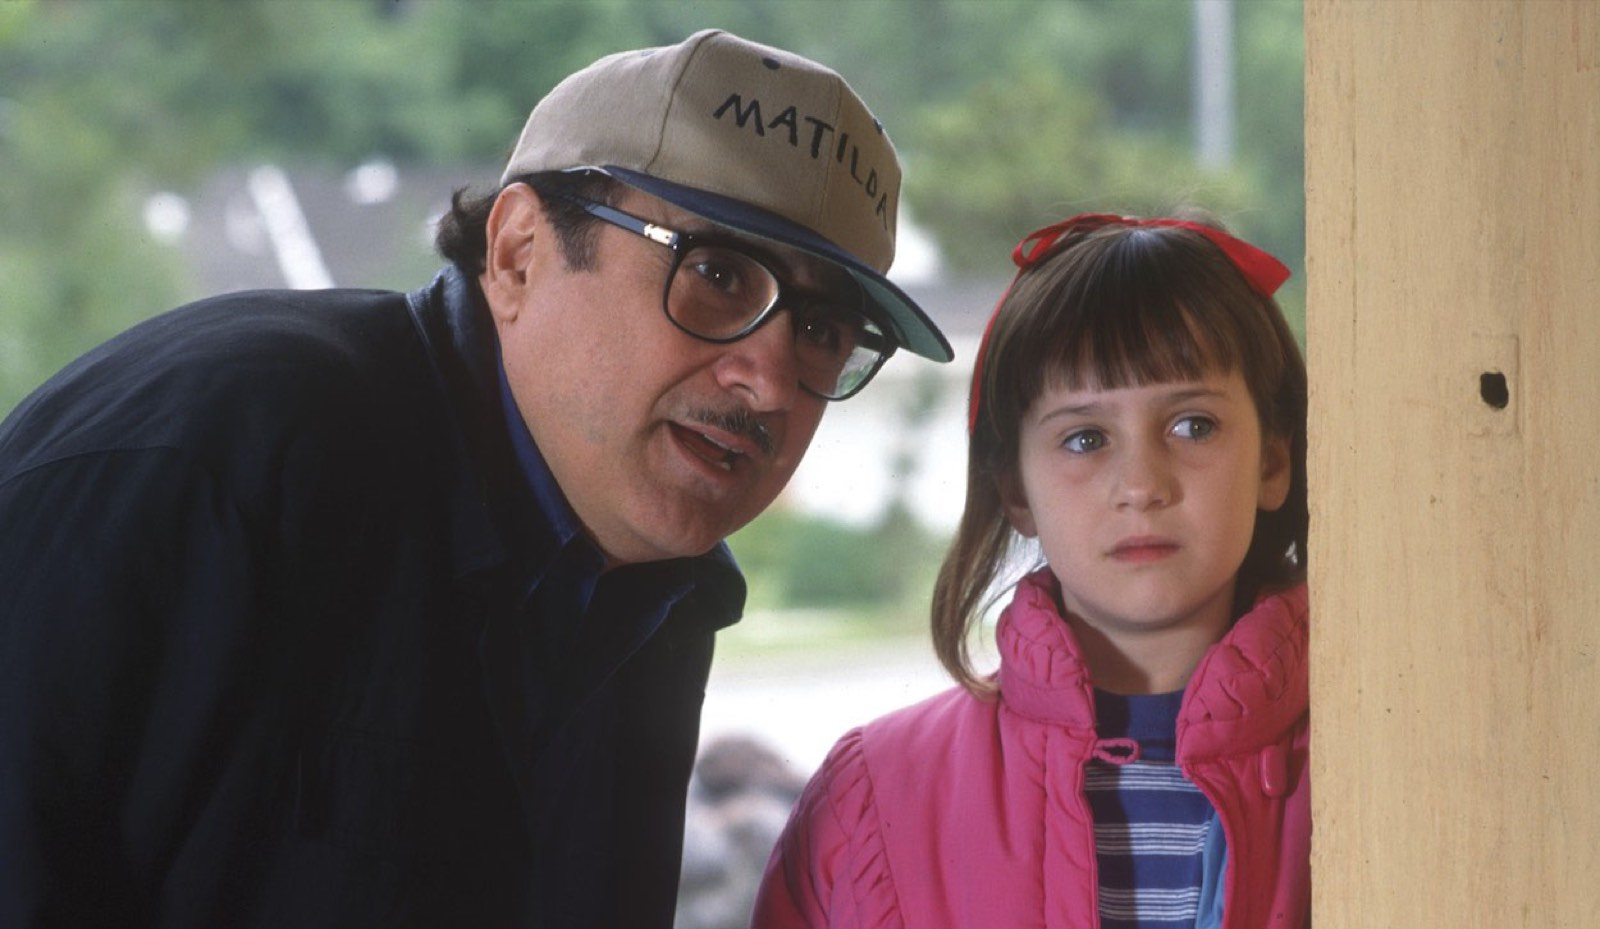 From the archive: Matilda